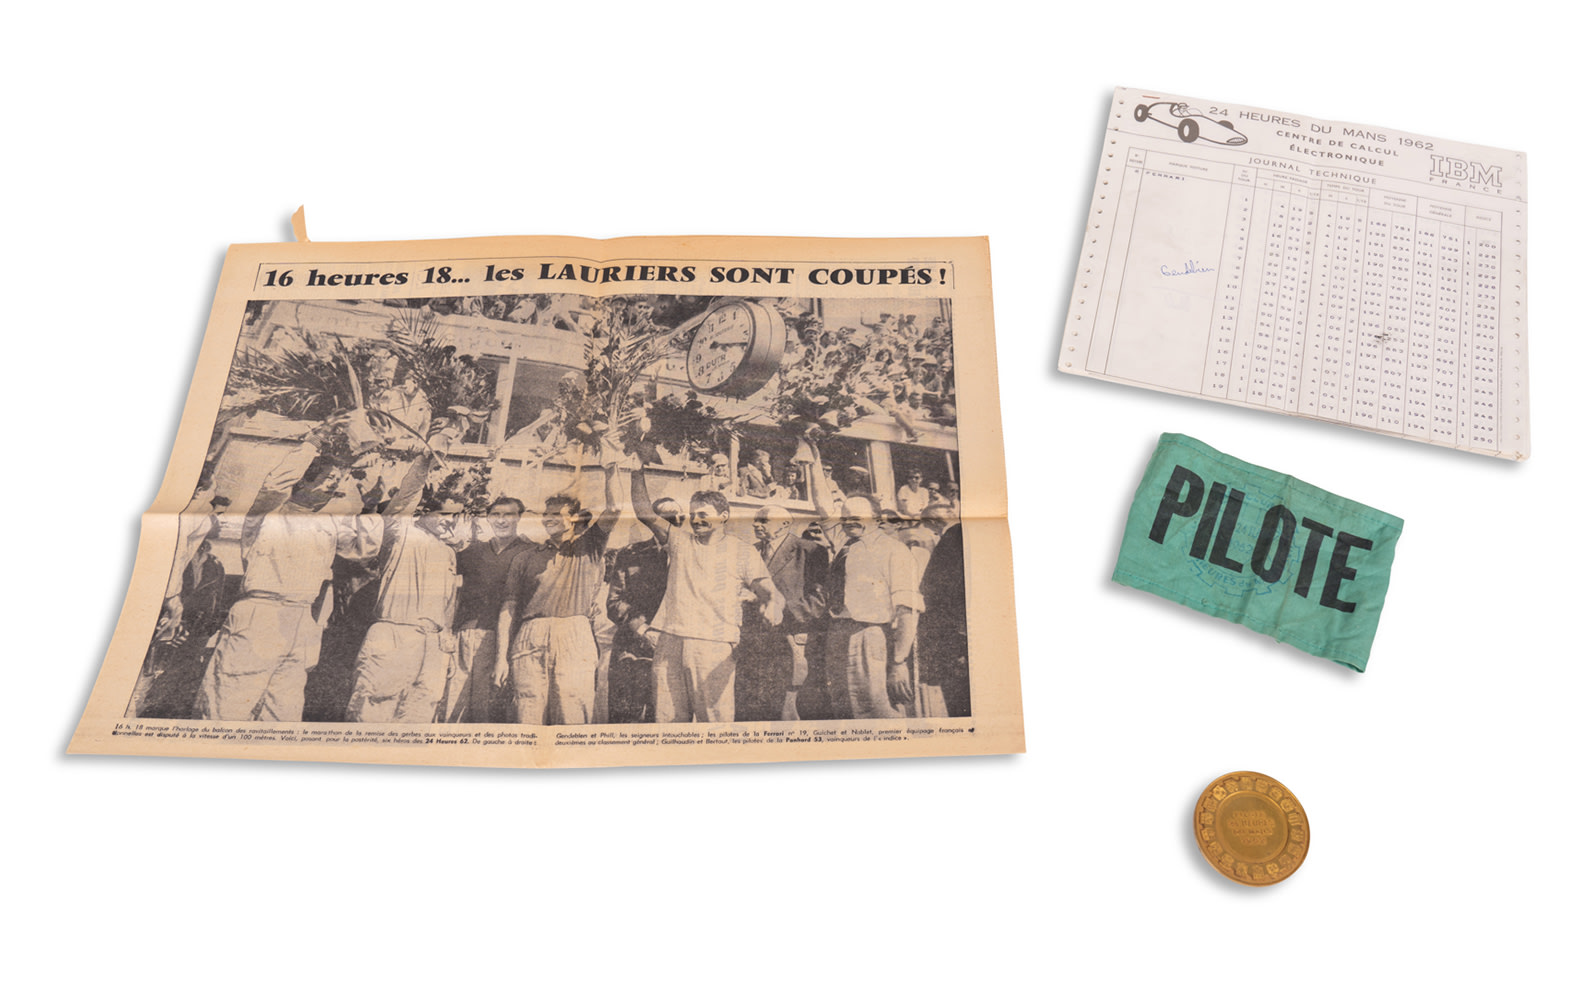 1962 24 Hours of Le Mans Driver Armband, Timesheets, Local Newspaper, and Pilote Coin